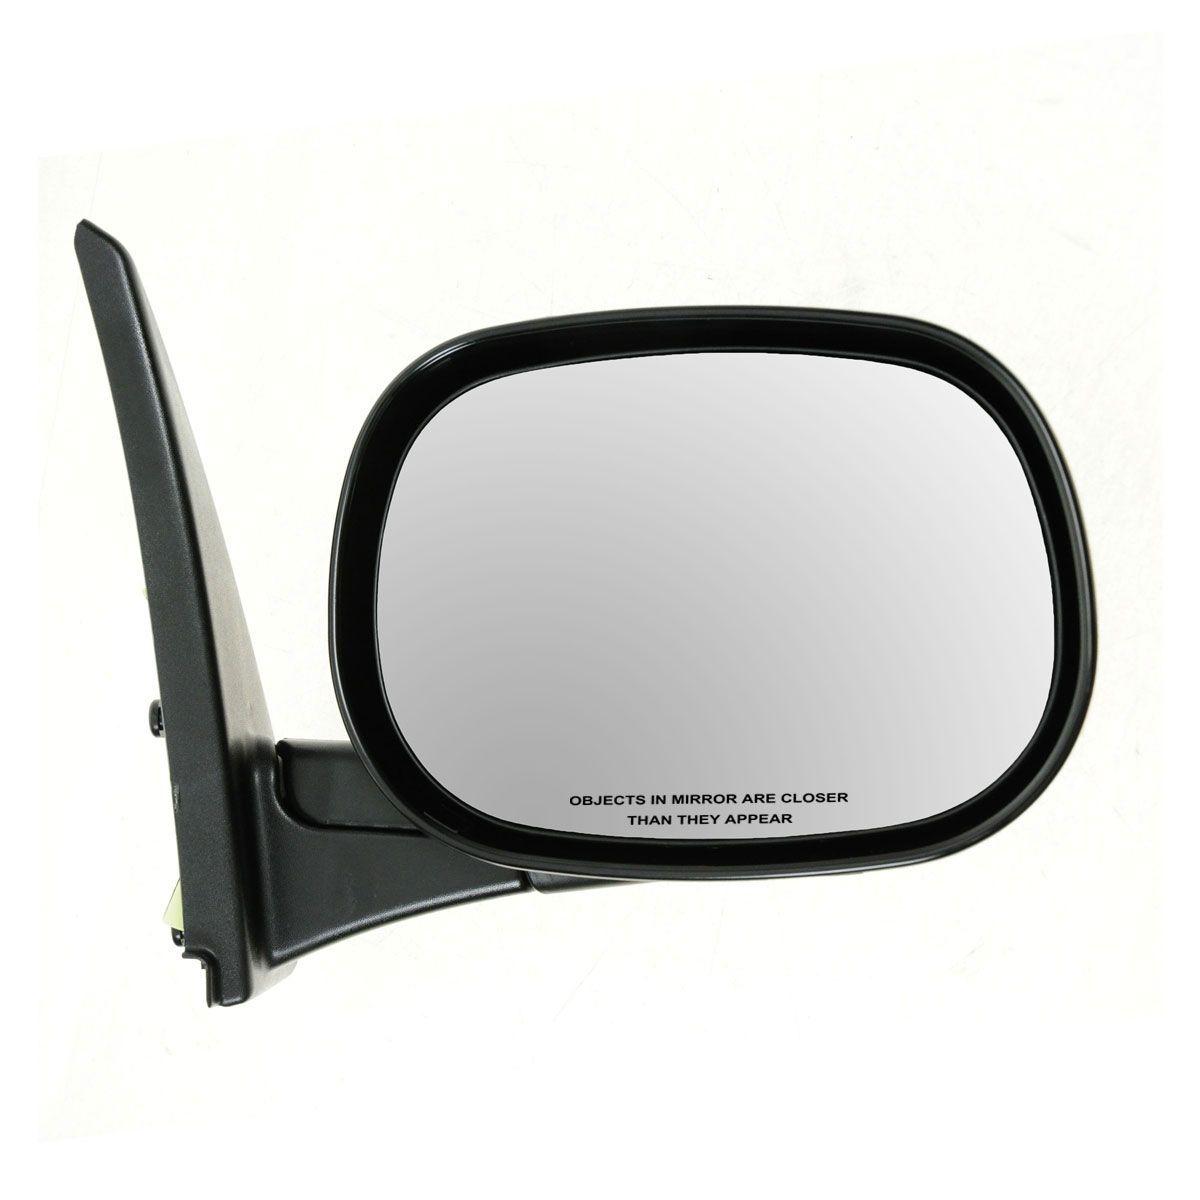 Manual Mirror Right for Dodge Ram Van Full Size 98-02 03